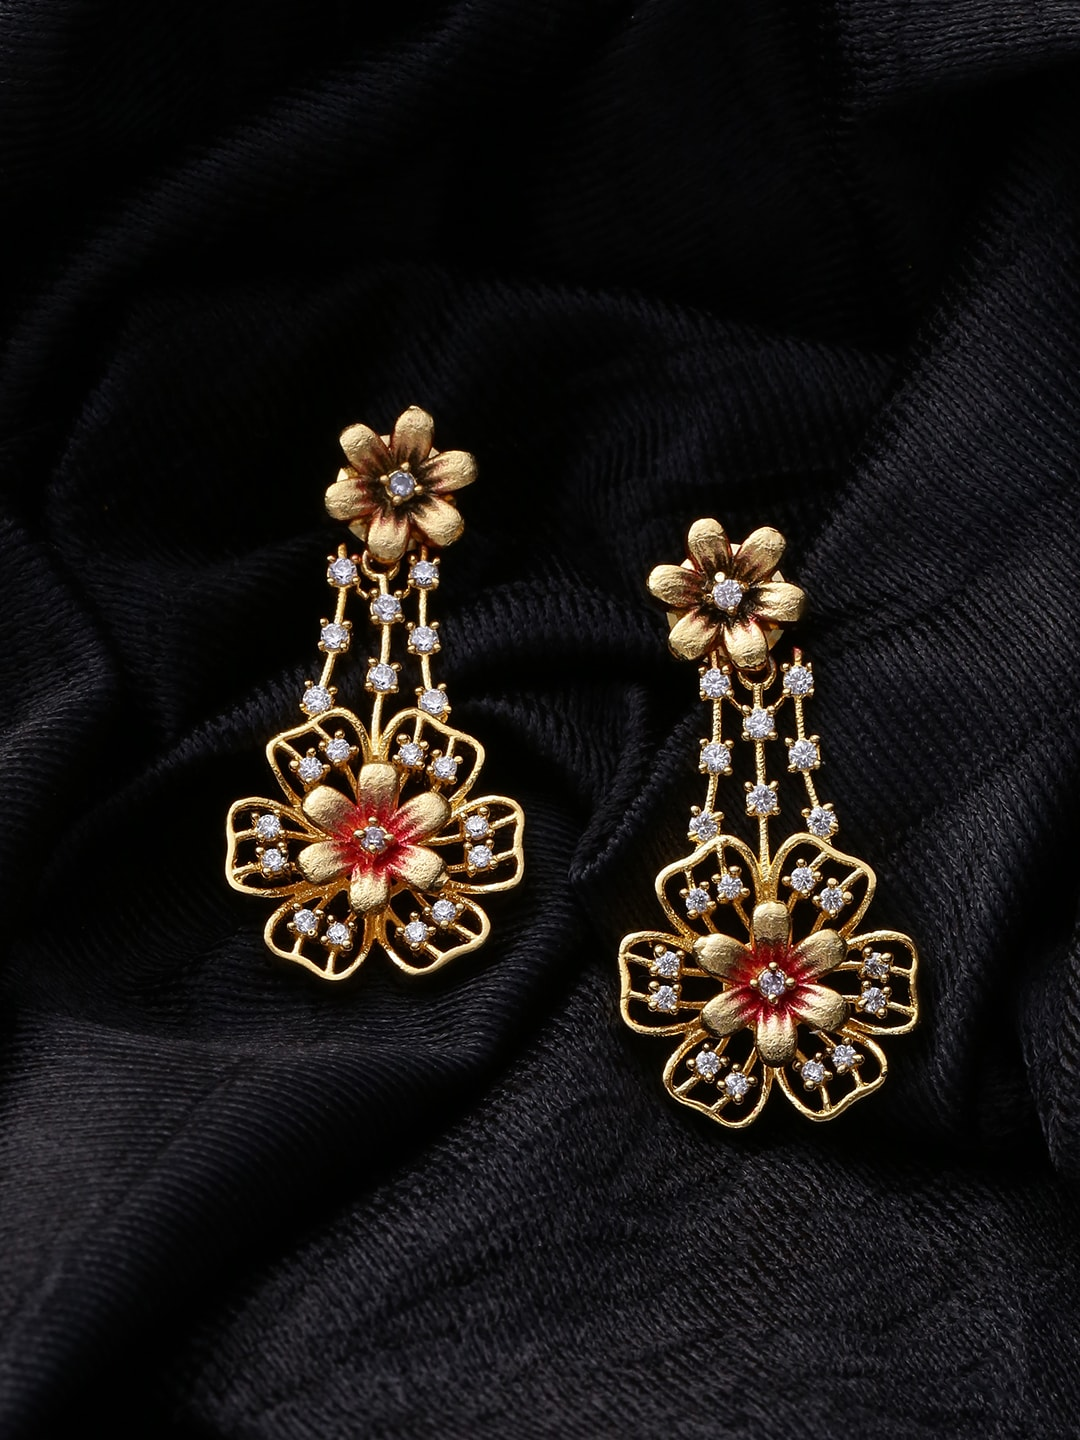 ad9b46112 Women Sarees Clutches Earrings - Buy Women Sarees Clutches Earrings online  in India